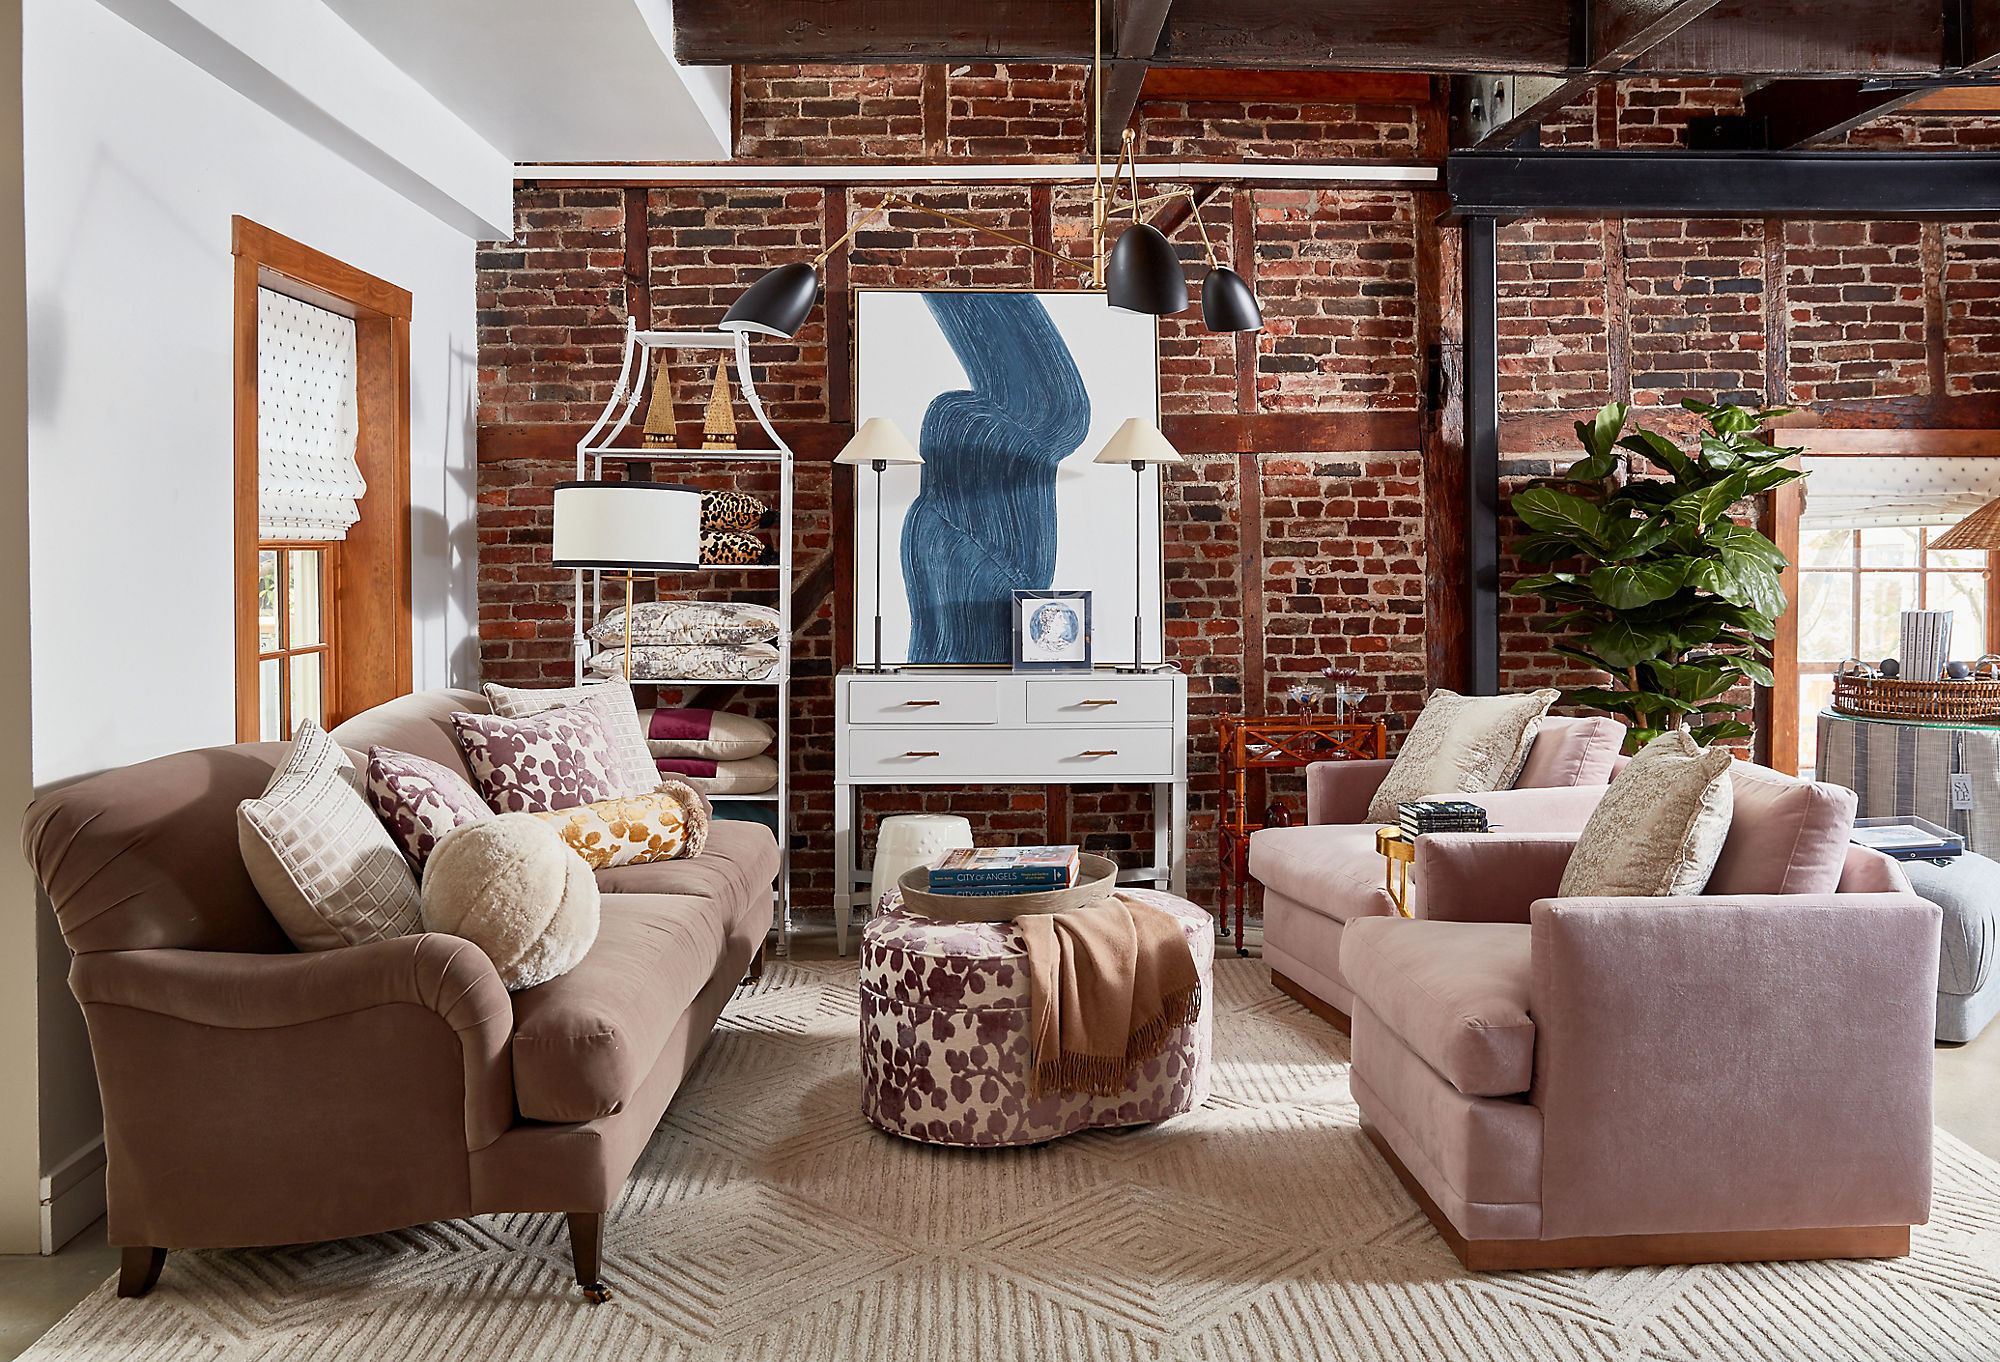 The sitting area features a pair of Shaw Swivel Club Chairs,aPortsmouth Upholstered Ottomanin amethyst-and-white velvet, and a cushy Hayes Sofa covered in stain-resistant Crypton velvet.